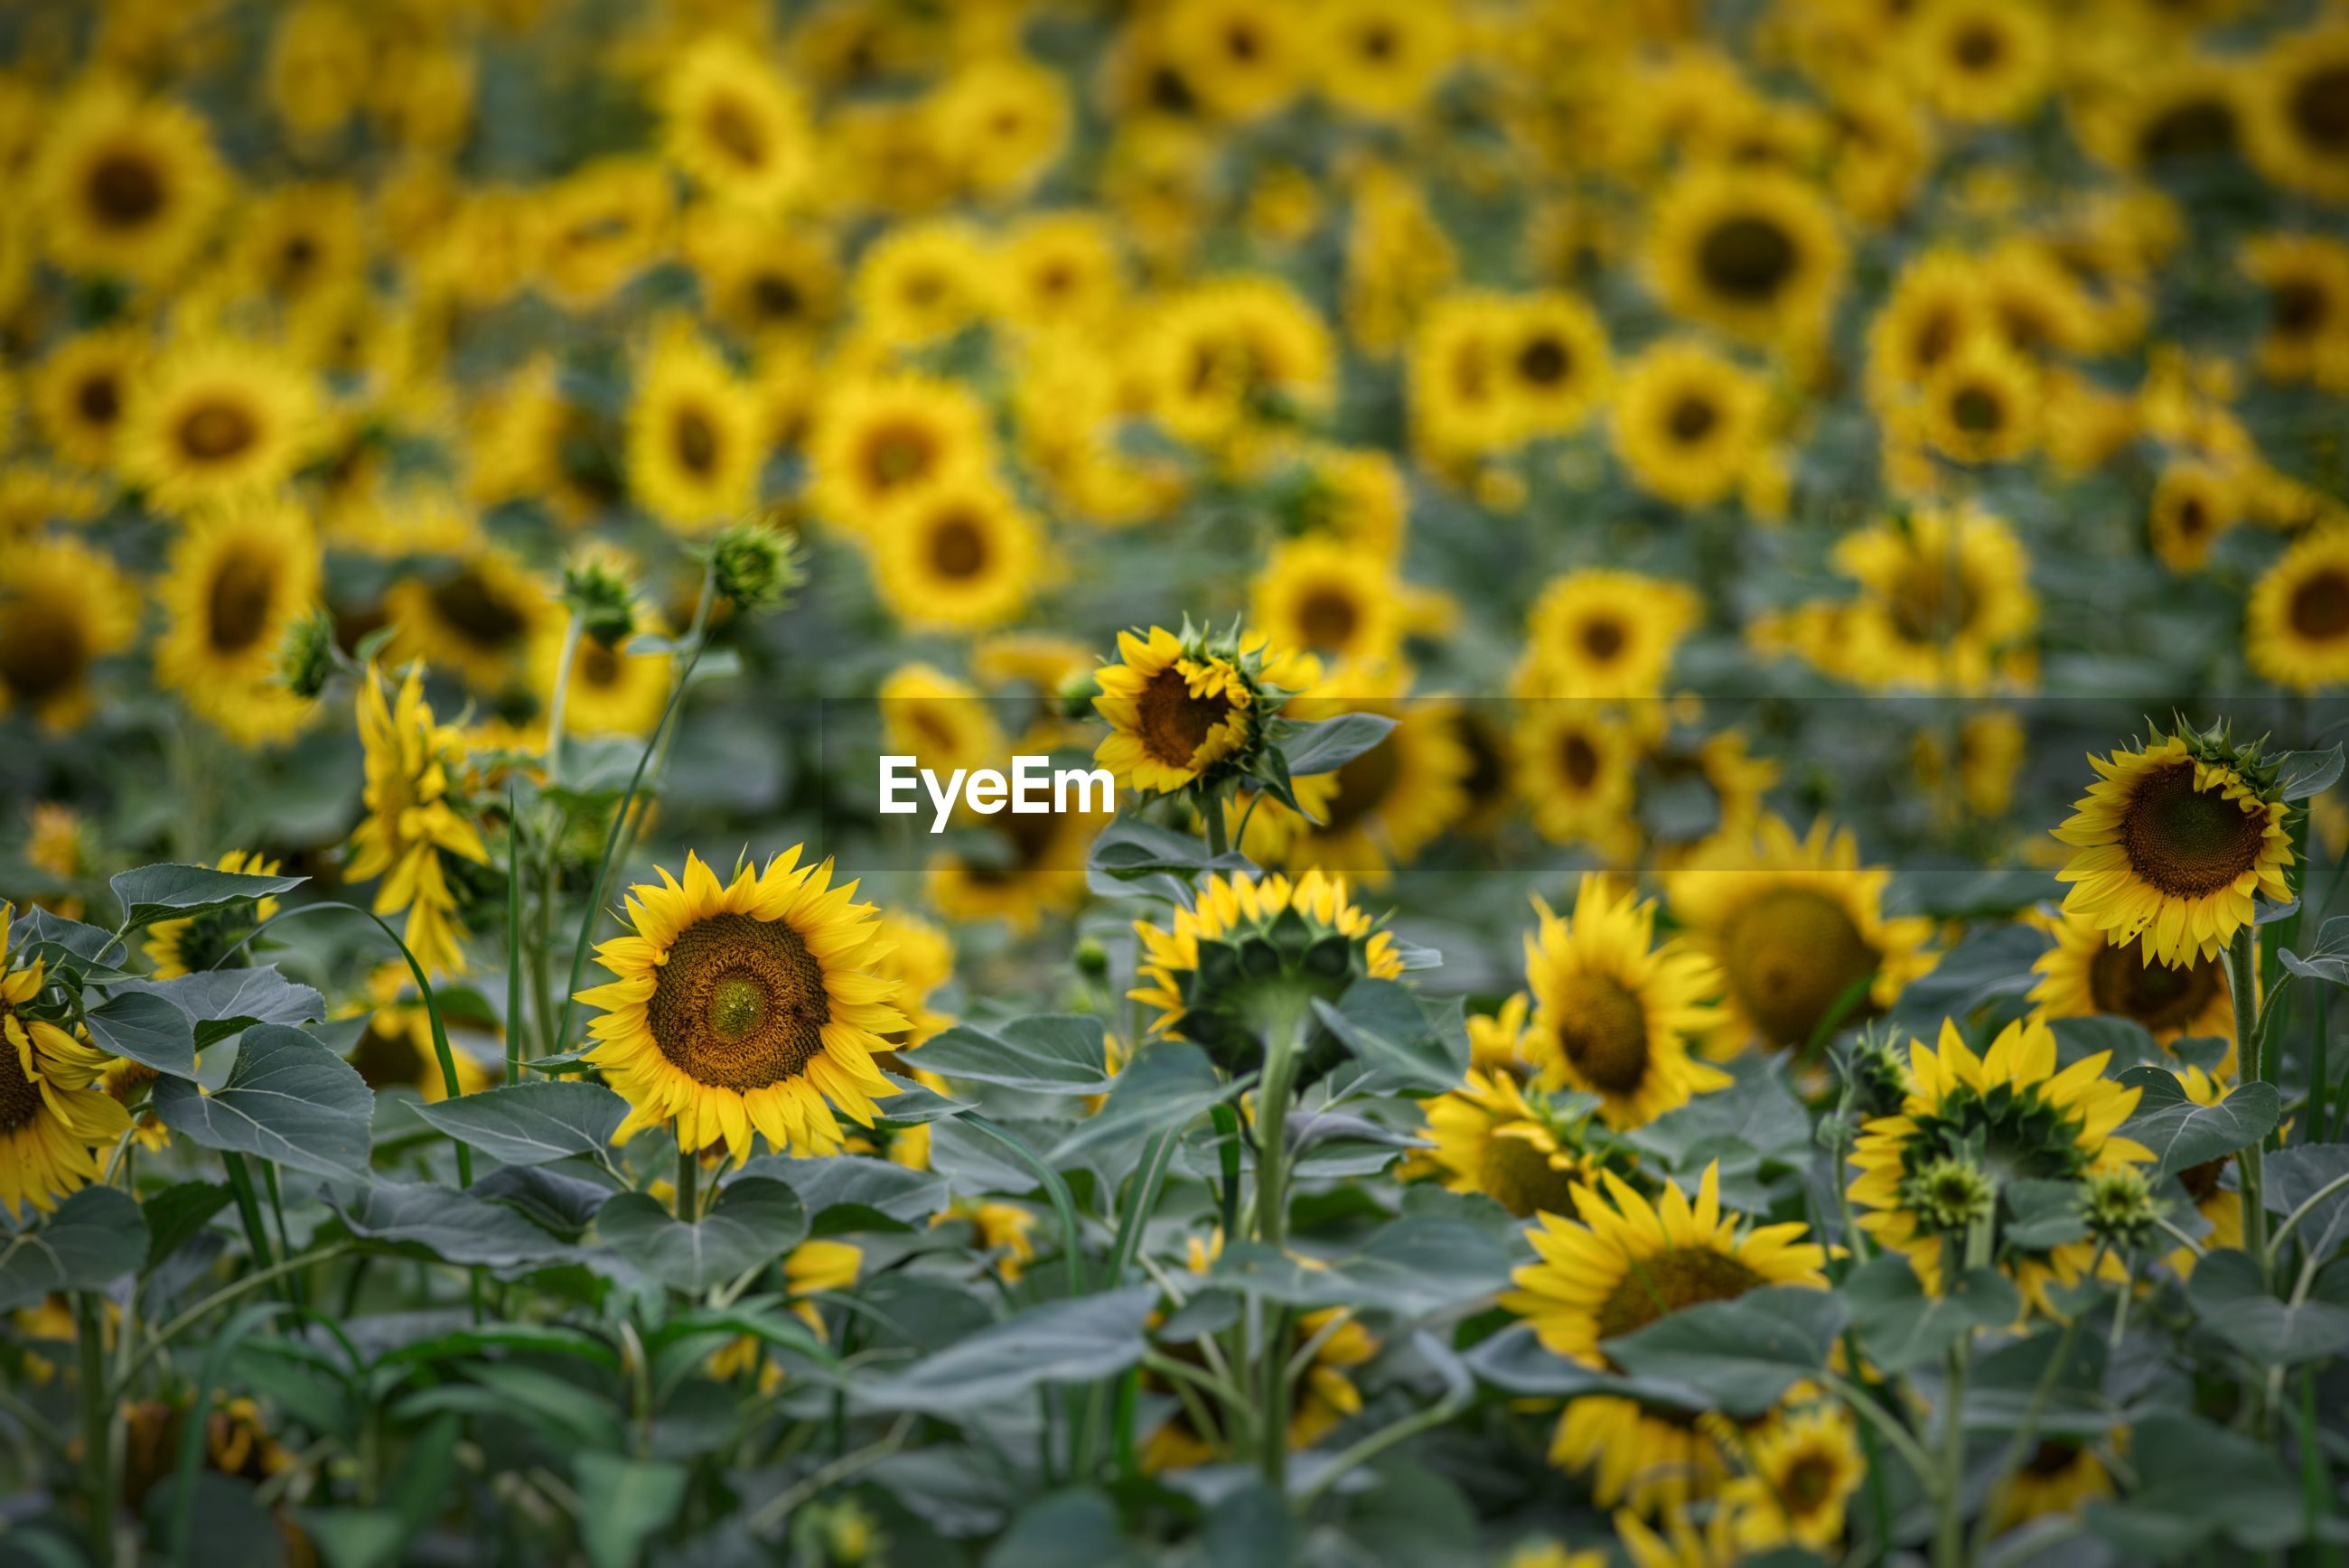 CLOSE-UP OF SUNFLOWERS ON WHITE FLOWERING PLANT